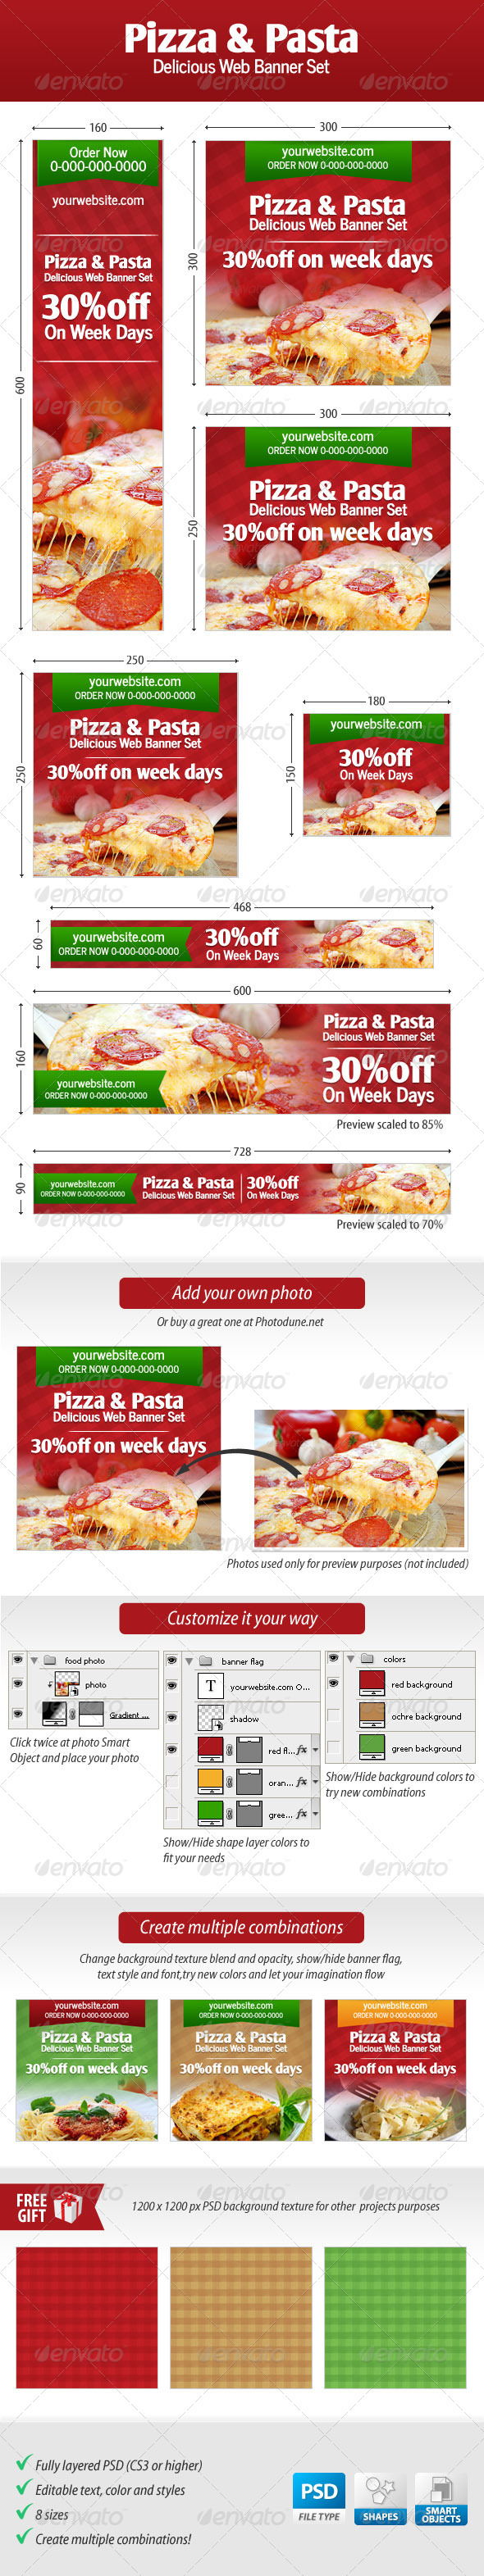 Pizza and Pasta Web Banner Set - Banners & Ads Web Elements